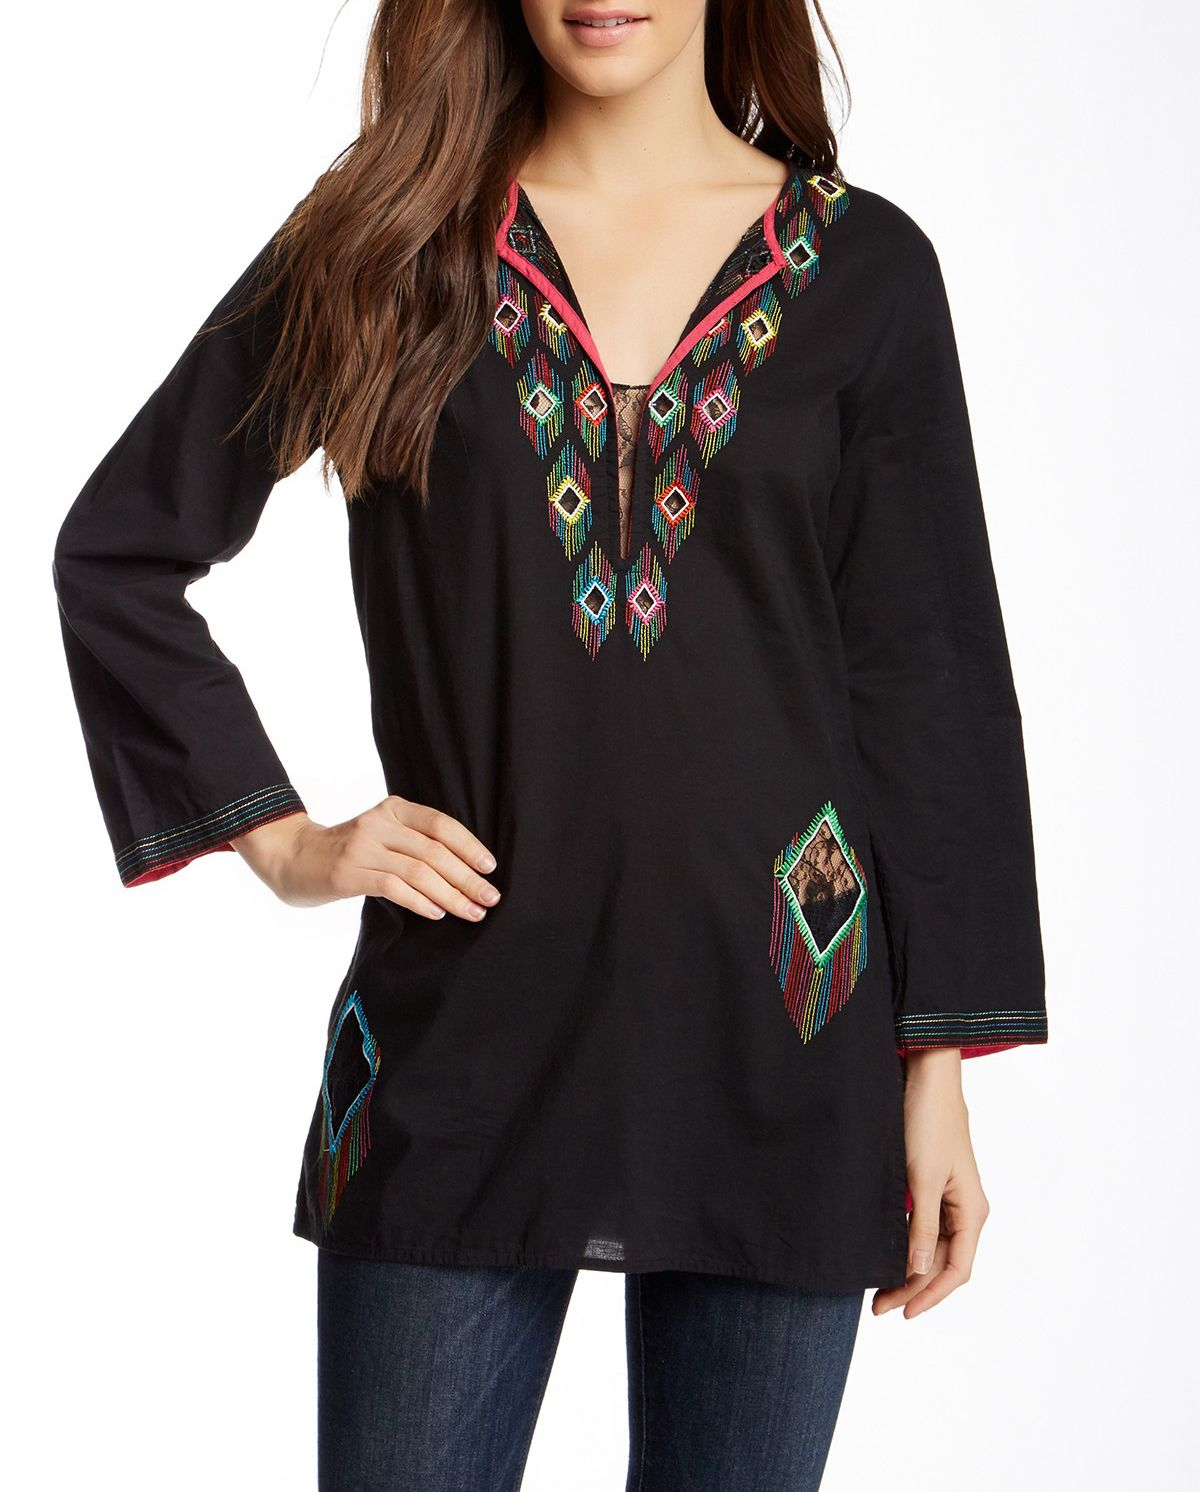 #Minnie #kasnewyork #top #black #tunic #colorful  #details #embroidery  Shop the look on KAS New York : http://kasnewyork.com/index.php?page=productslist&storeid=89&categoryID=1001&subcatID=&subsubcatID=&prodid=14066&sess=store89